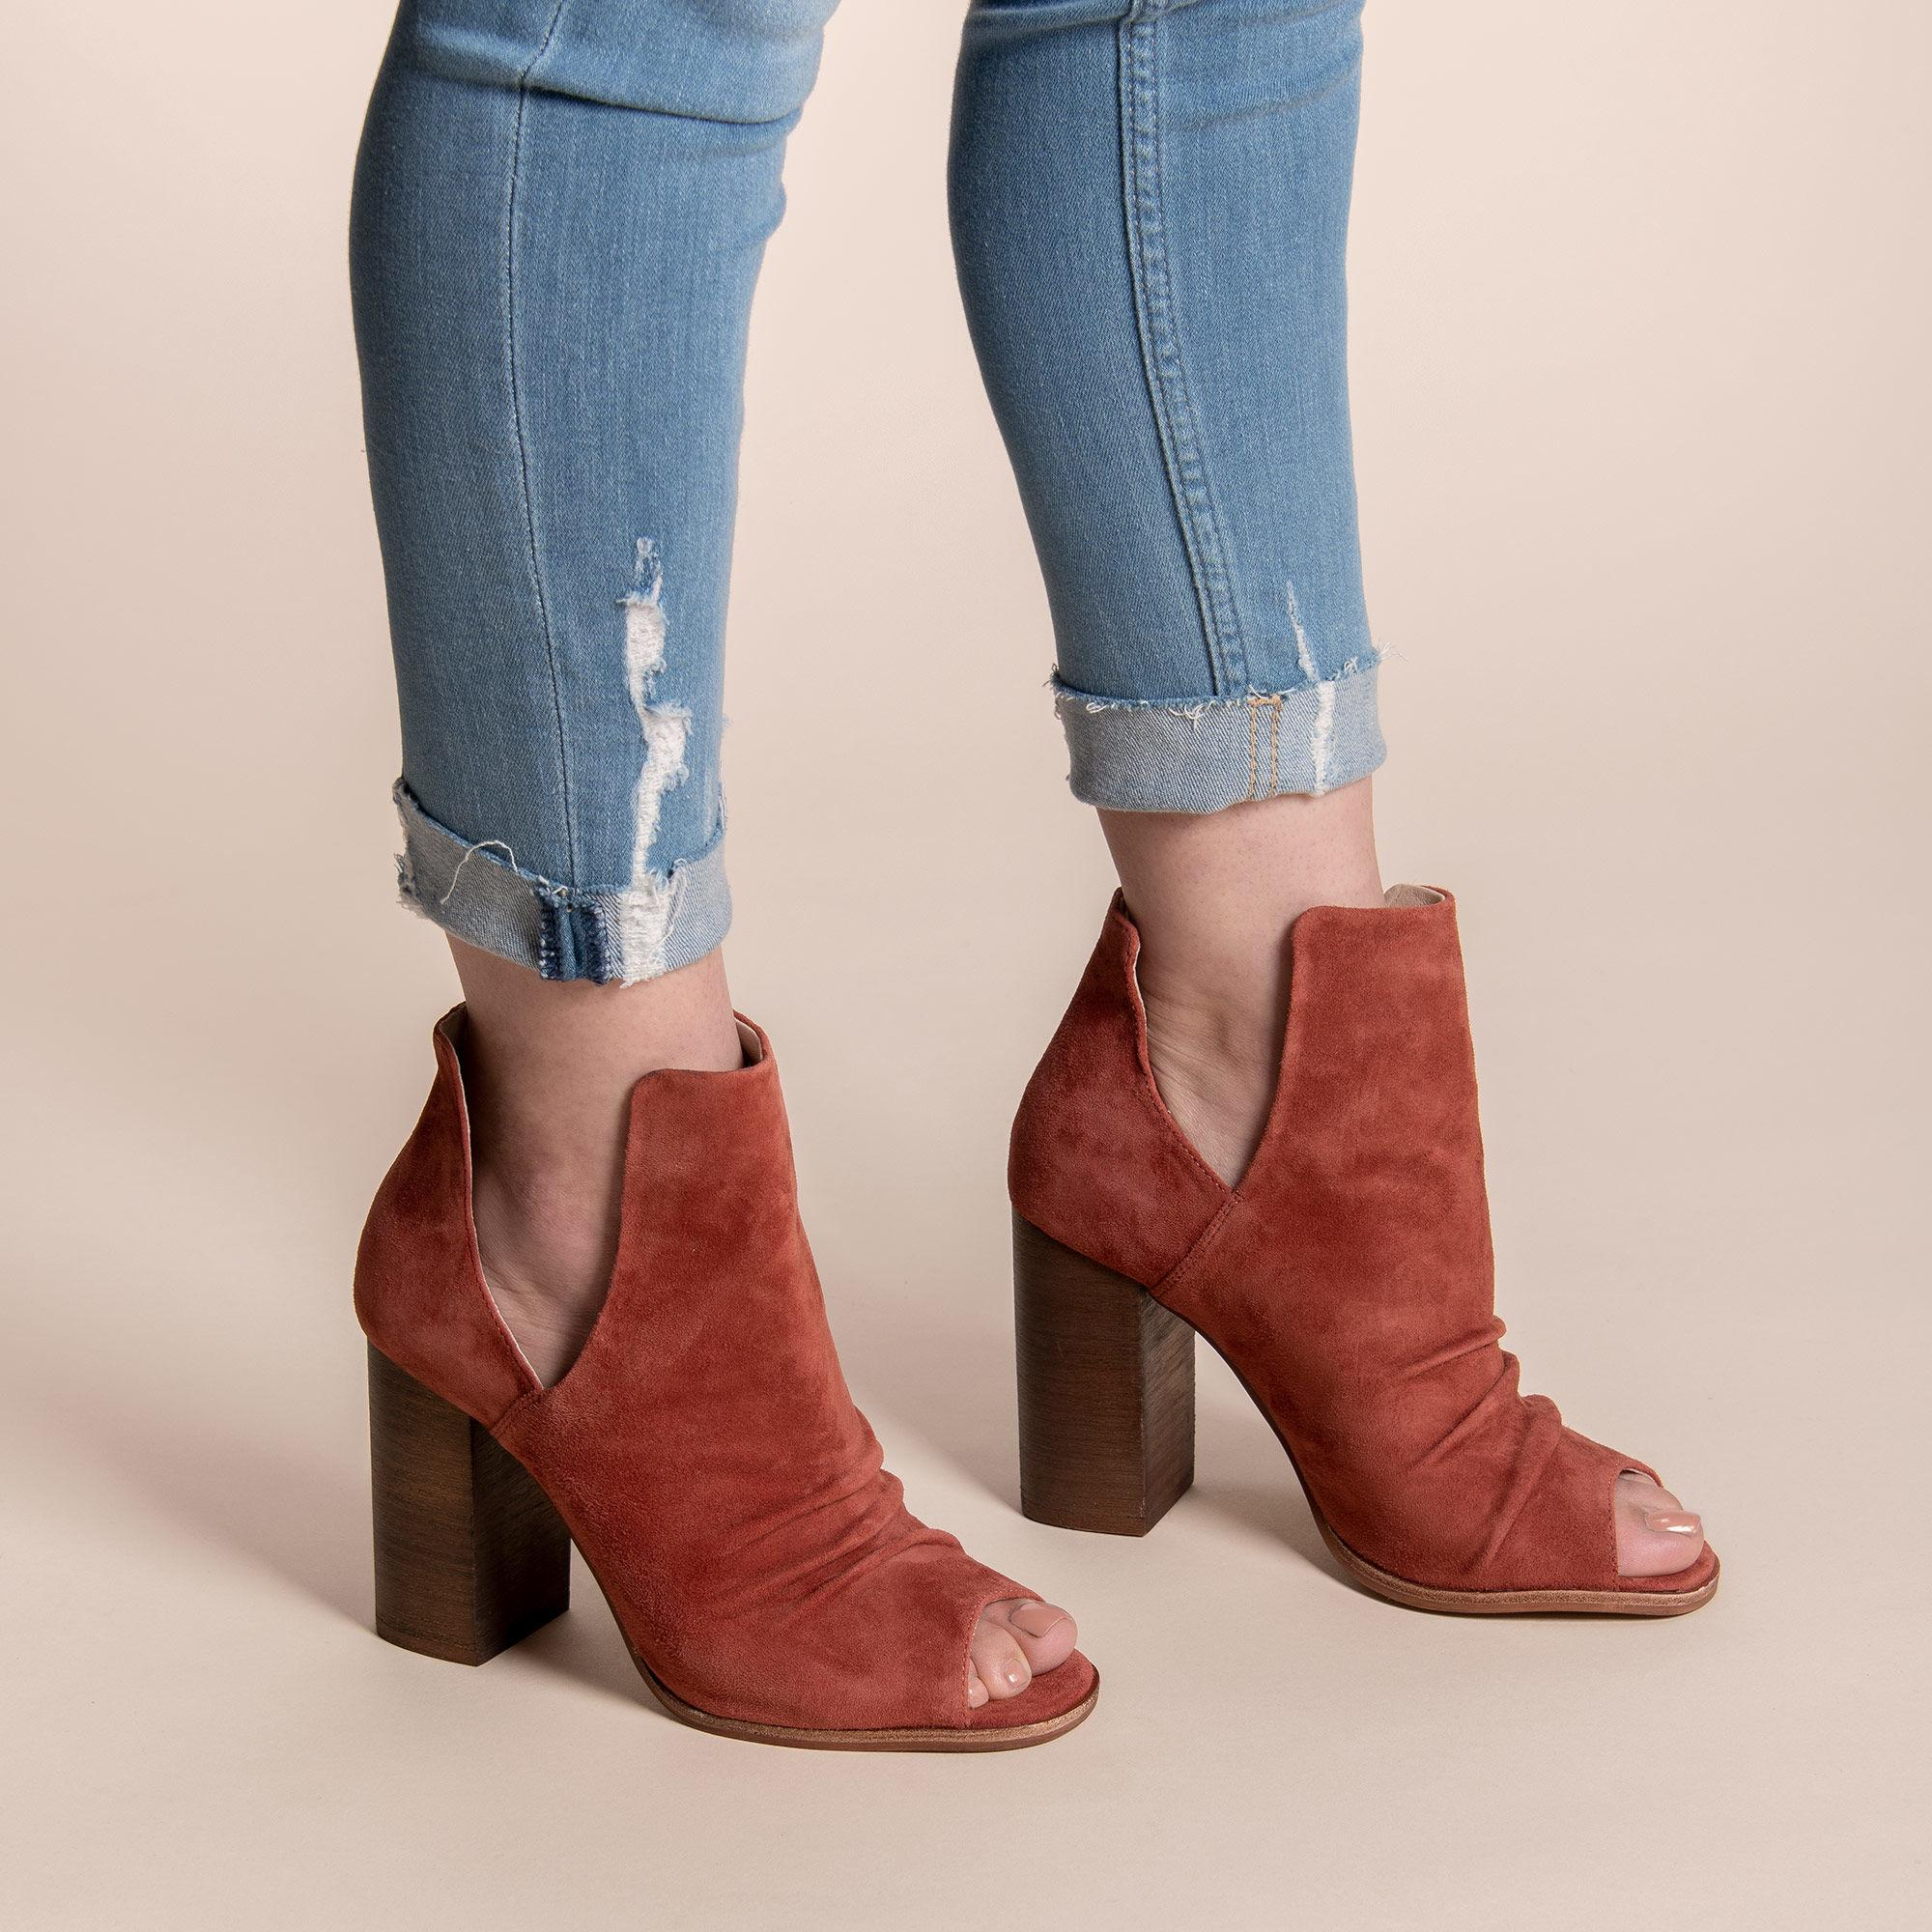 ac68532139f Lyst - Chinese Laundry Leena Peep Toe Bootie in Brown